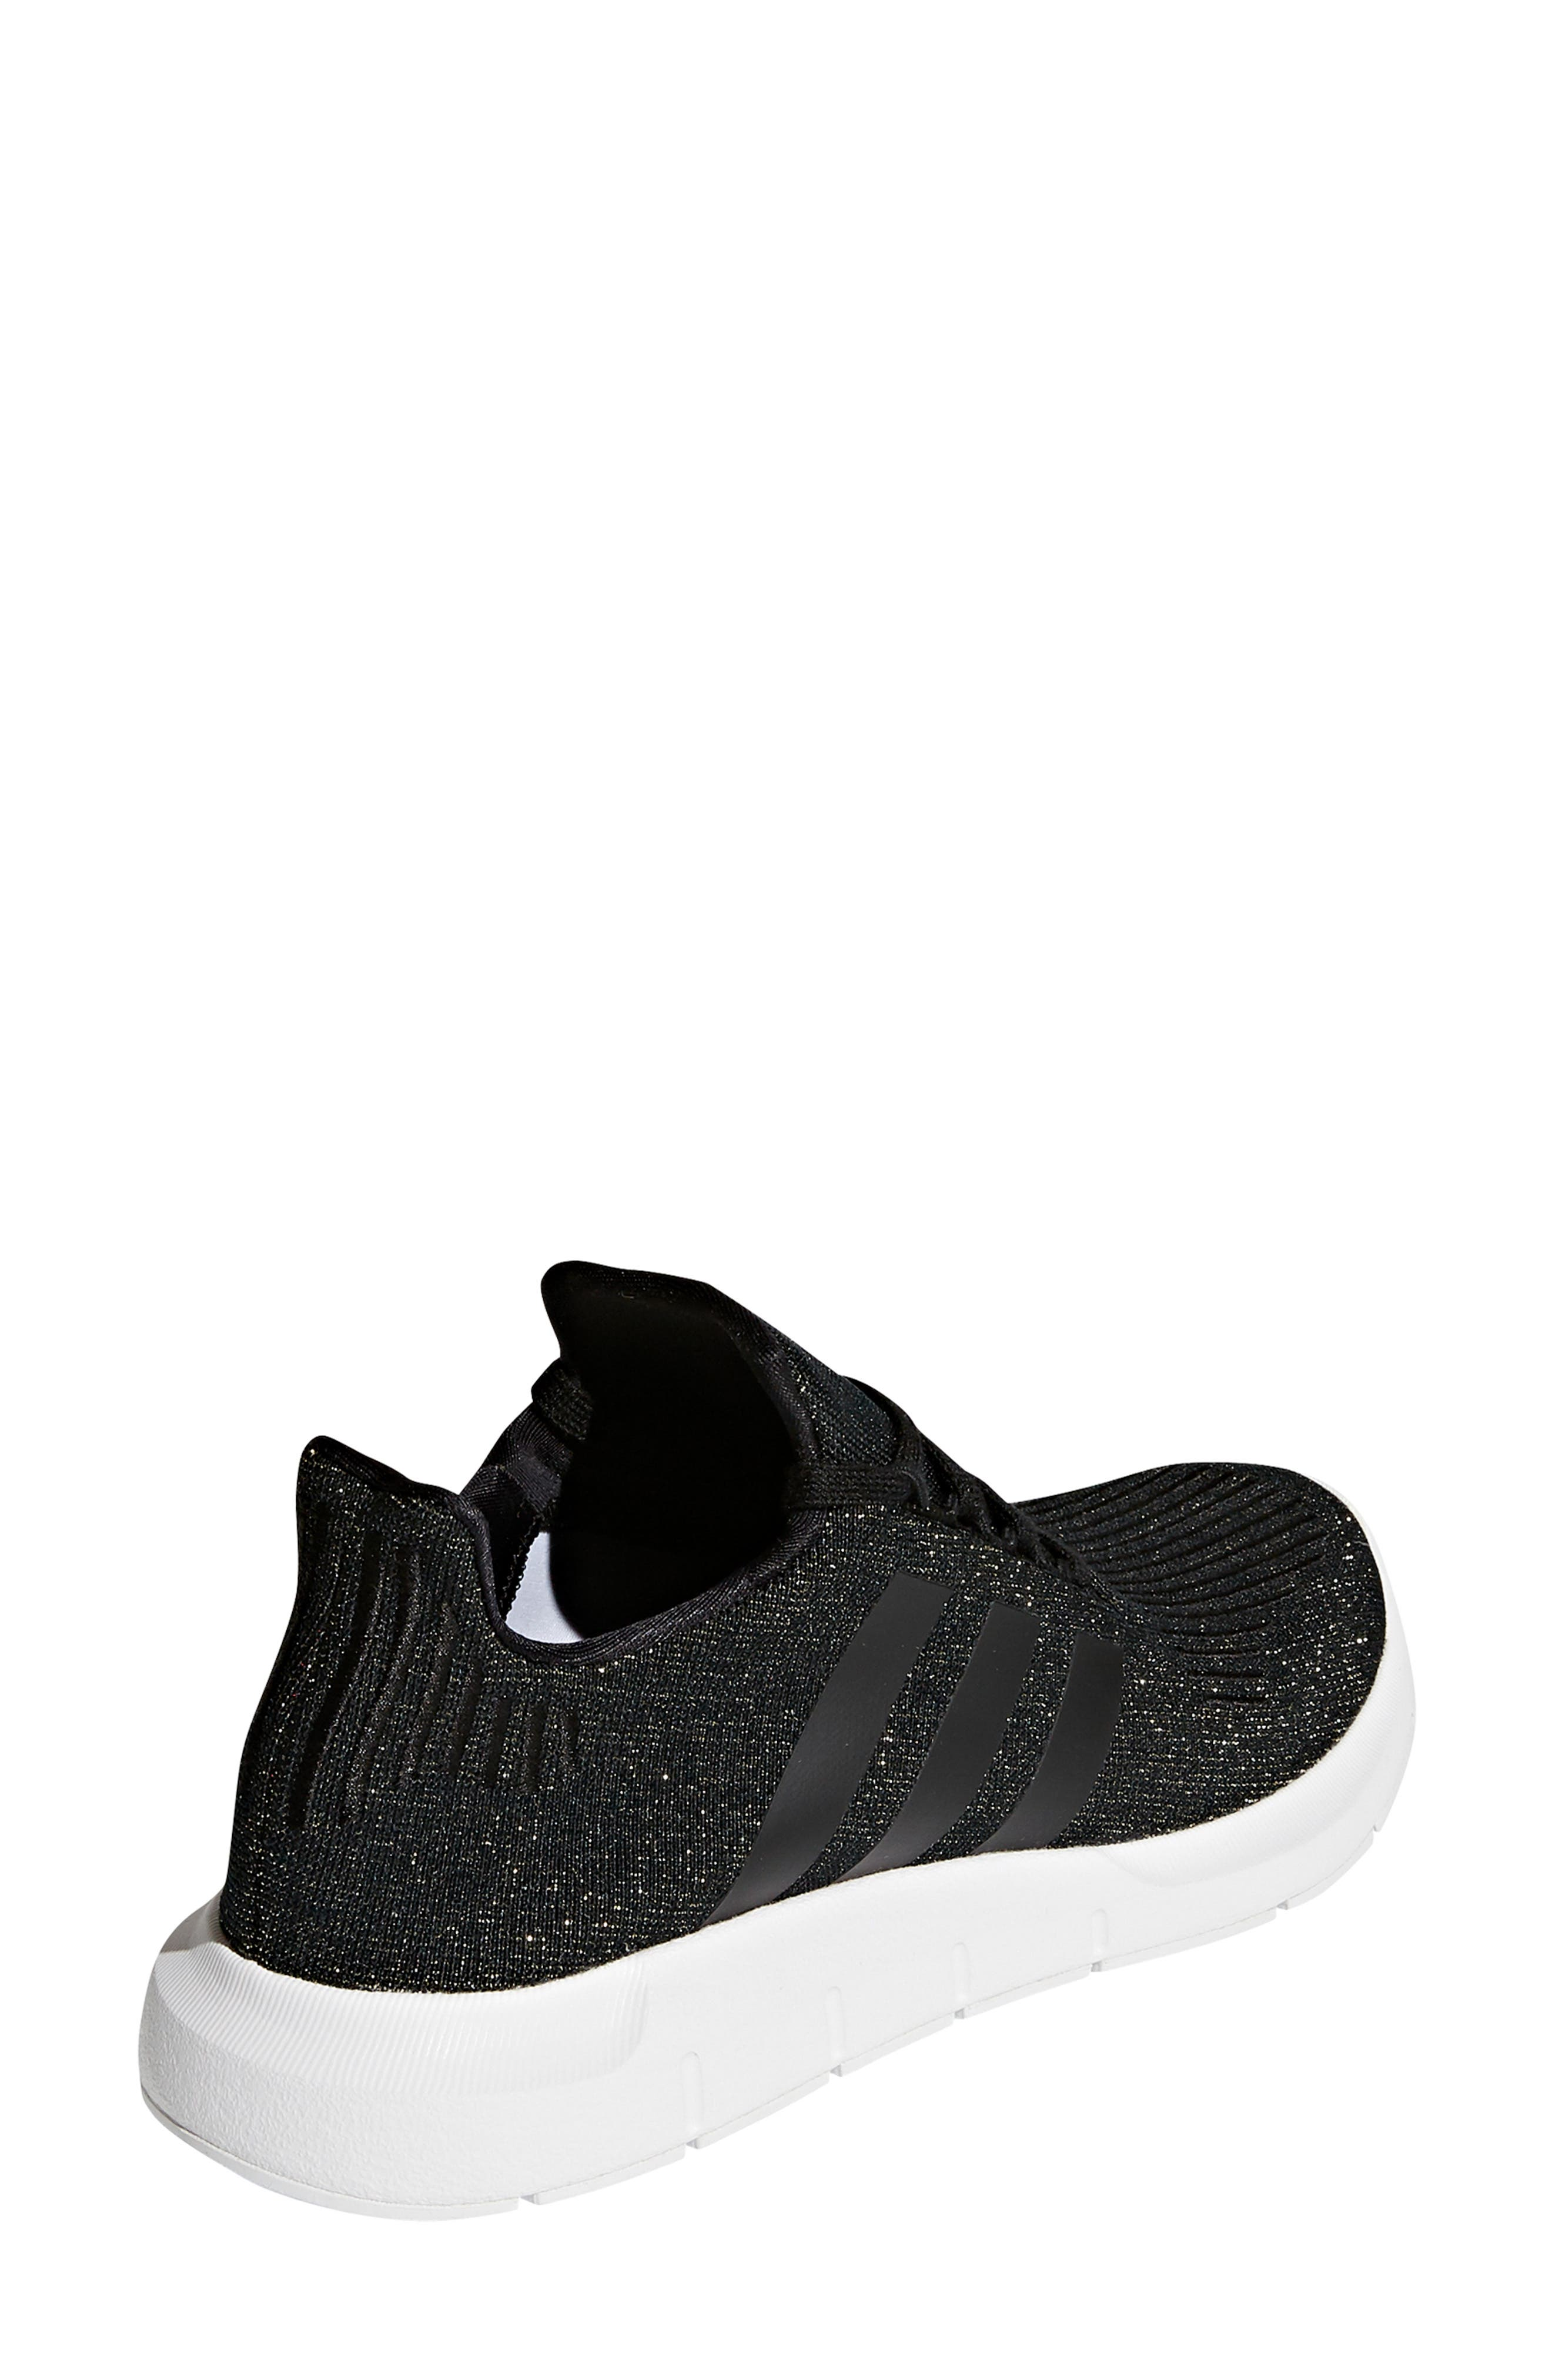 taille 40 b5502 c2e3b Women's Adidas Shoes | Nordstrom